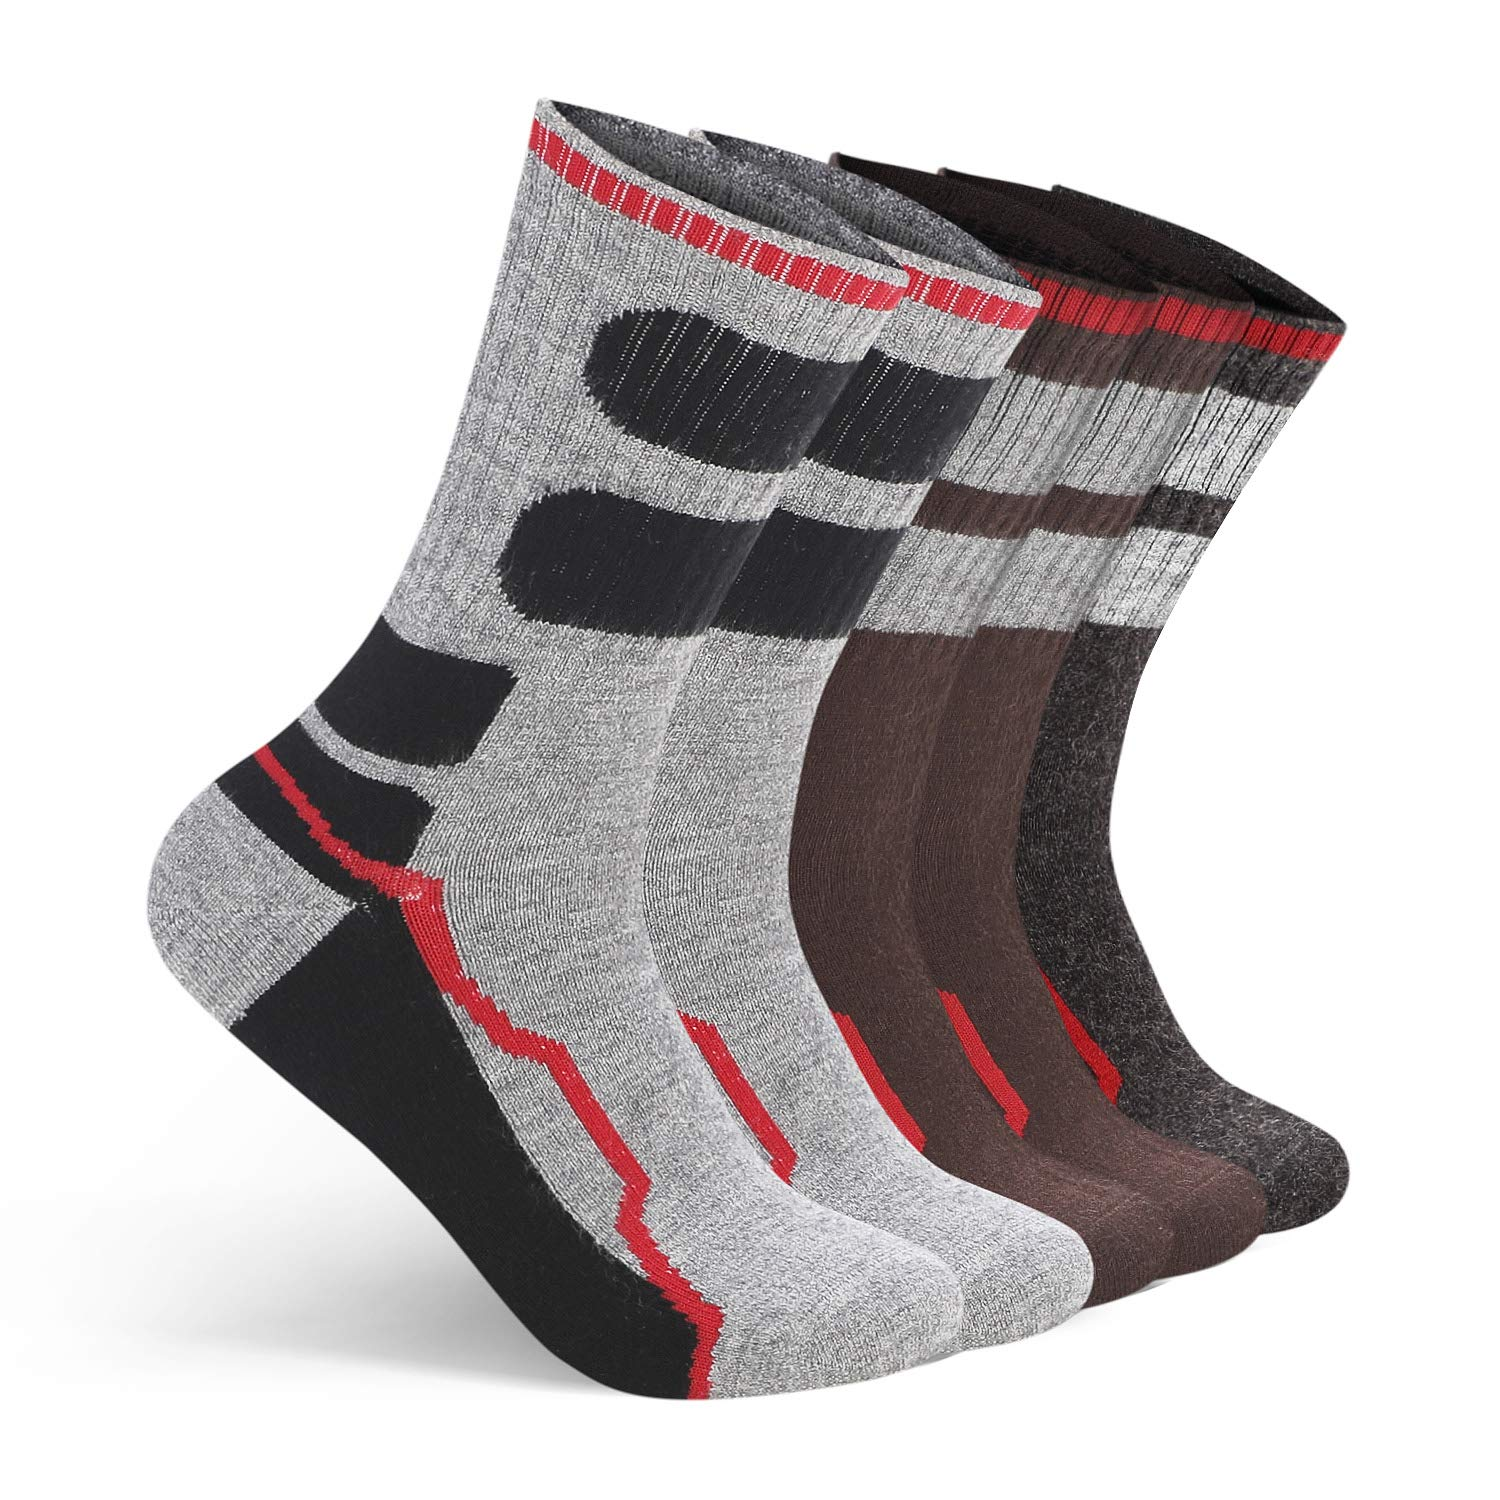 AIMKE 5 Pairs Merino Wool Sock,Athletic Socks Men Hiking Trekking Heavyweight Crew Socks Sweat-wicking and Cushioned Year-round(Style04)  Price: $18.89